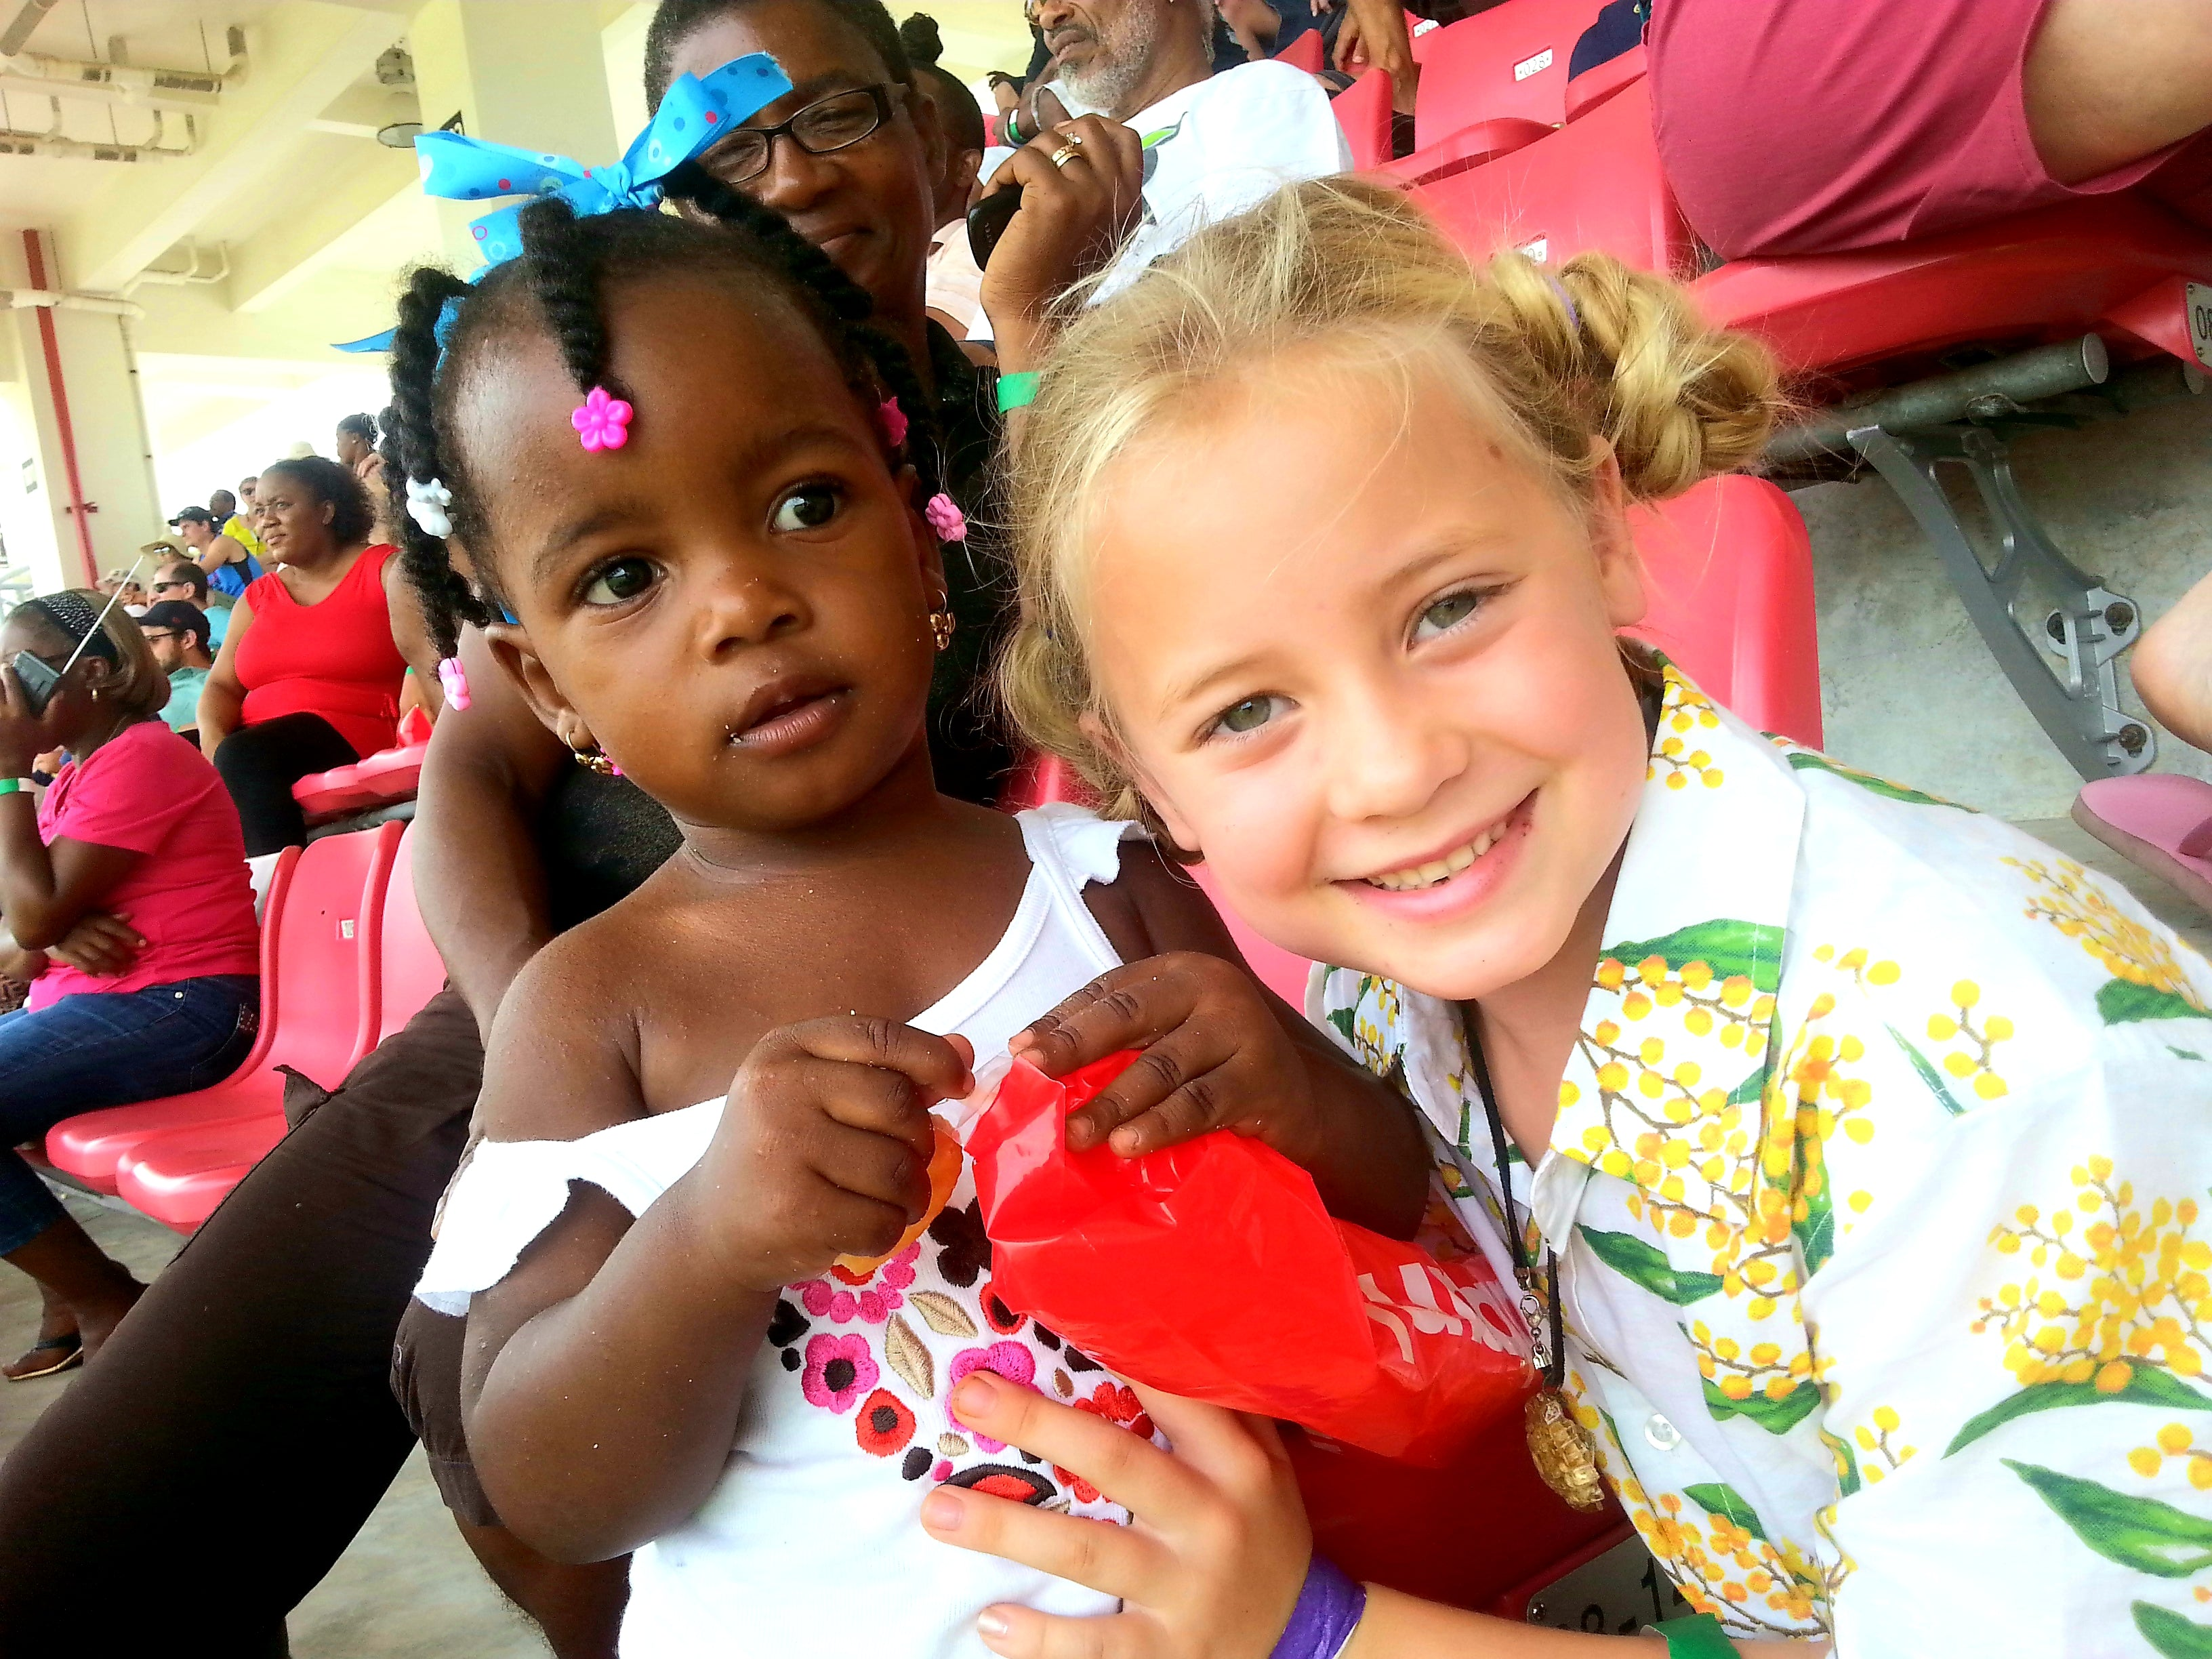 Australian Cricket Tours - Our Youngest Ever Client, Marli, Playing With A Young Dominican Girl At The Cricket